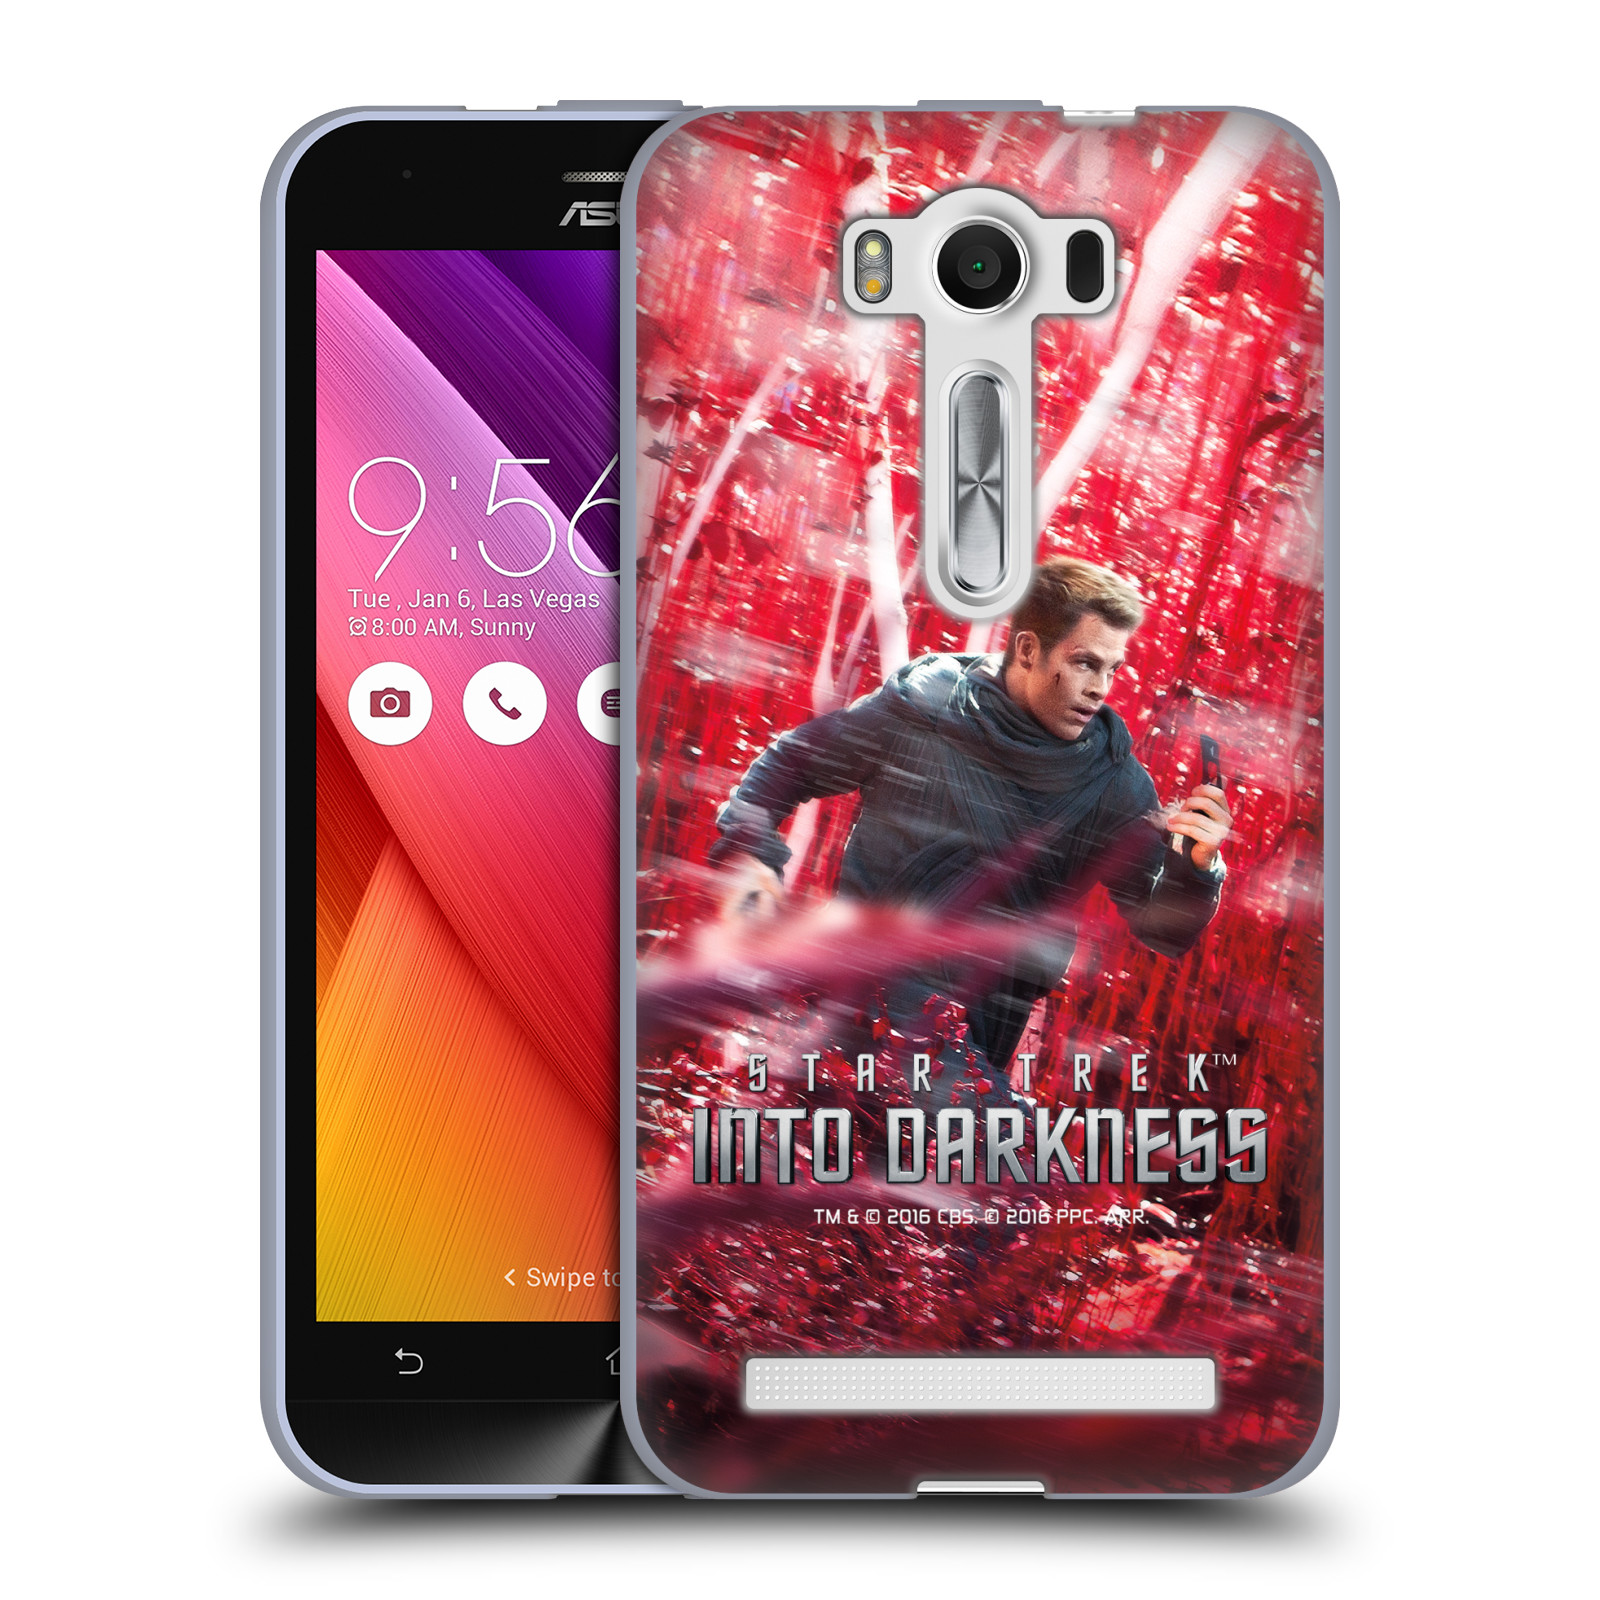 OFFICIAL STAR TREK POSTERS INTO DARKNESS XII SOFT GEL CASE FOR ASUS ZENFONE PHONES